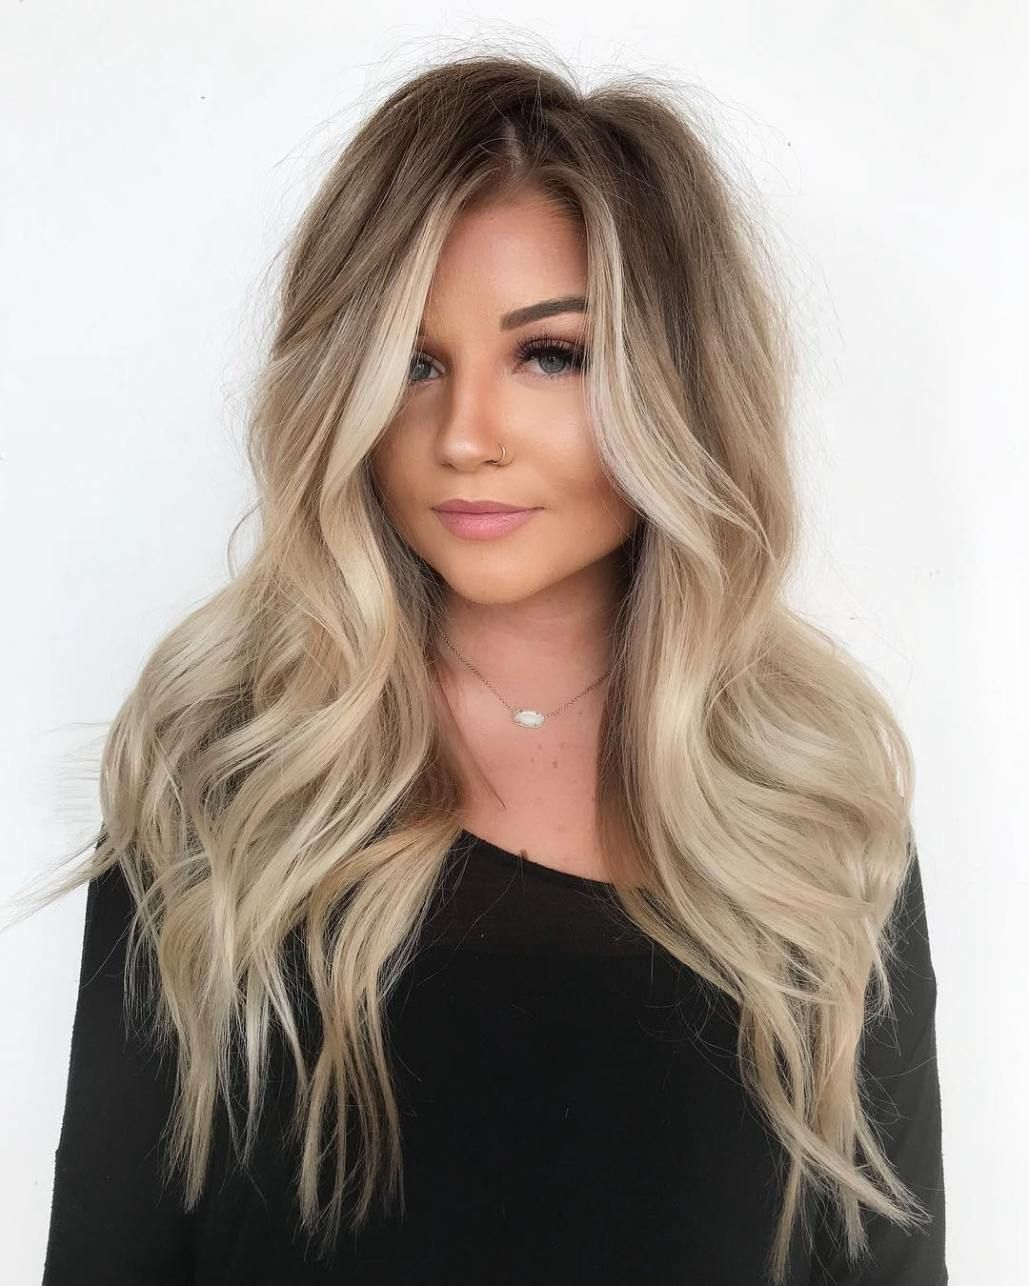 Best Hairstyles And Haircuts For Heart Shaped Faces Hair Styles Long Hair Styles Cool Hair Color